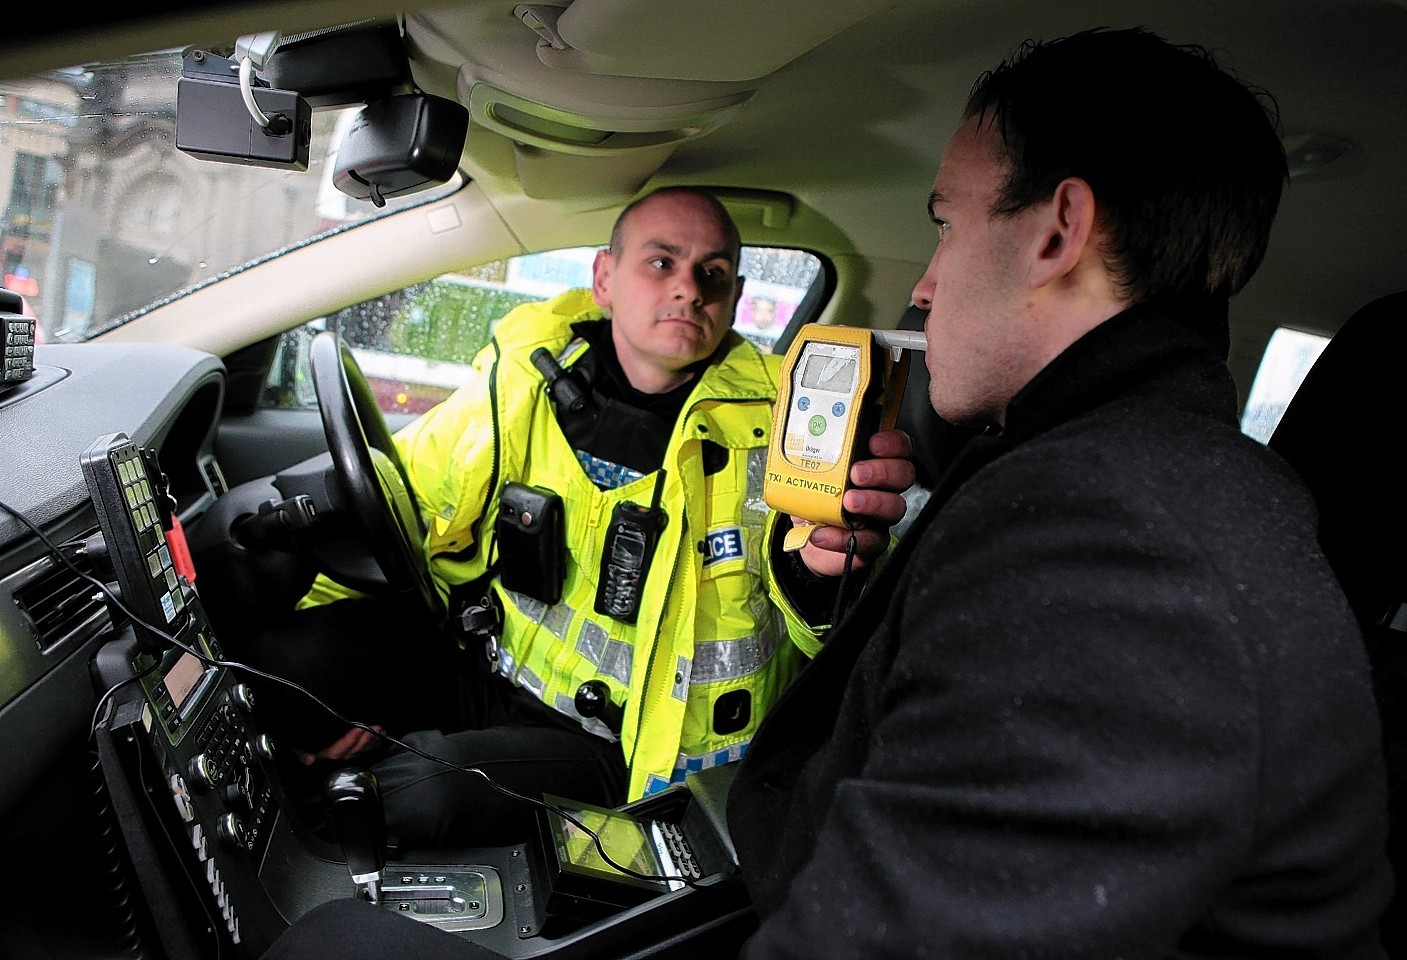 Stock image of police using breathalyser.